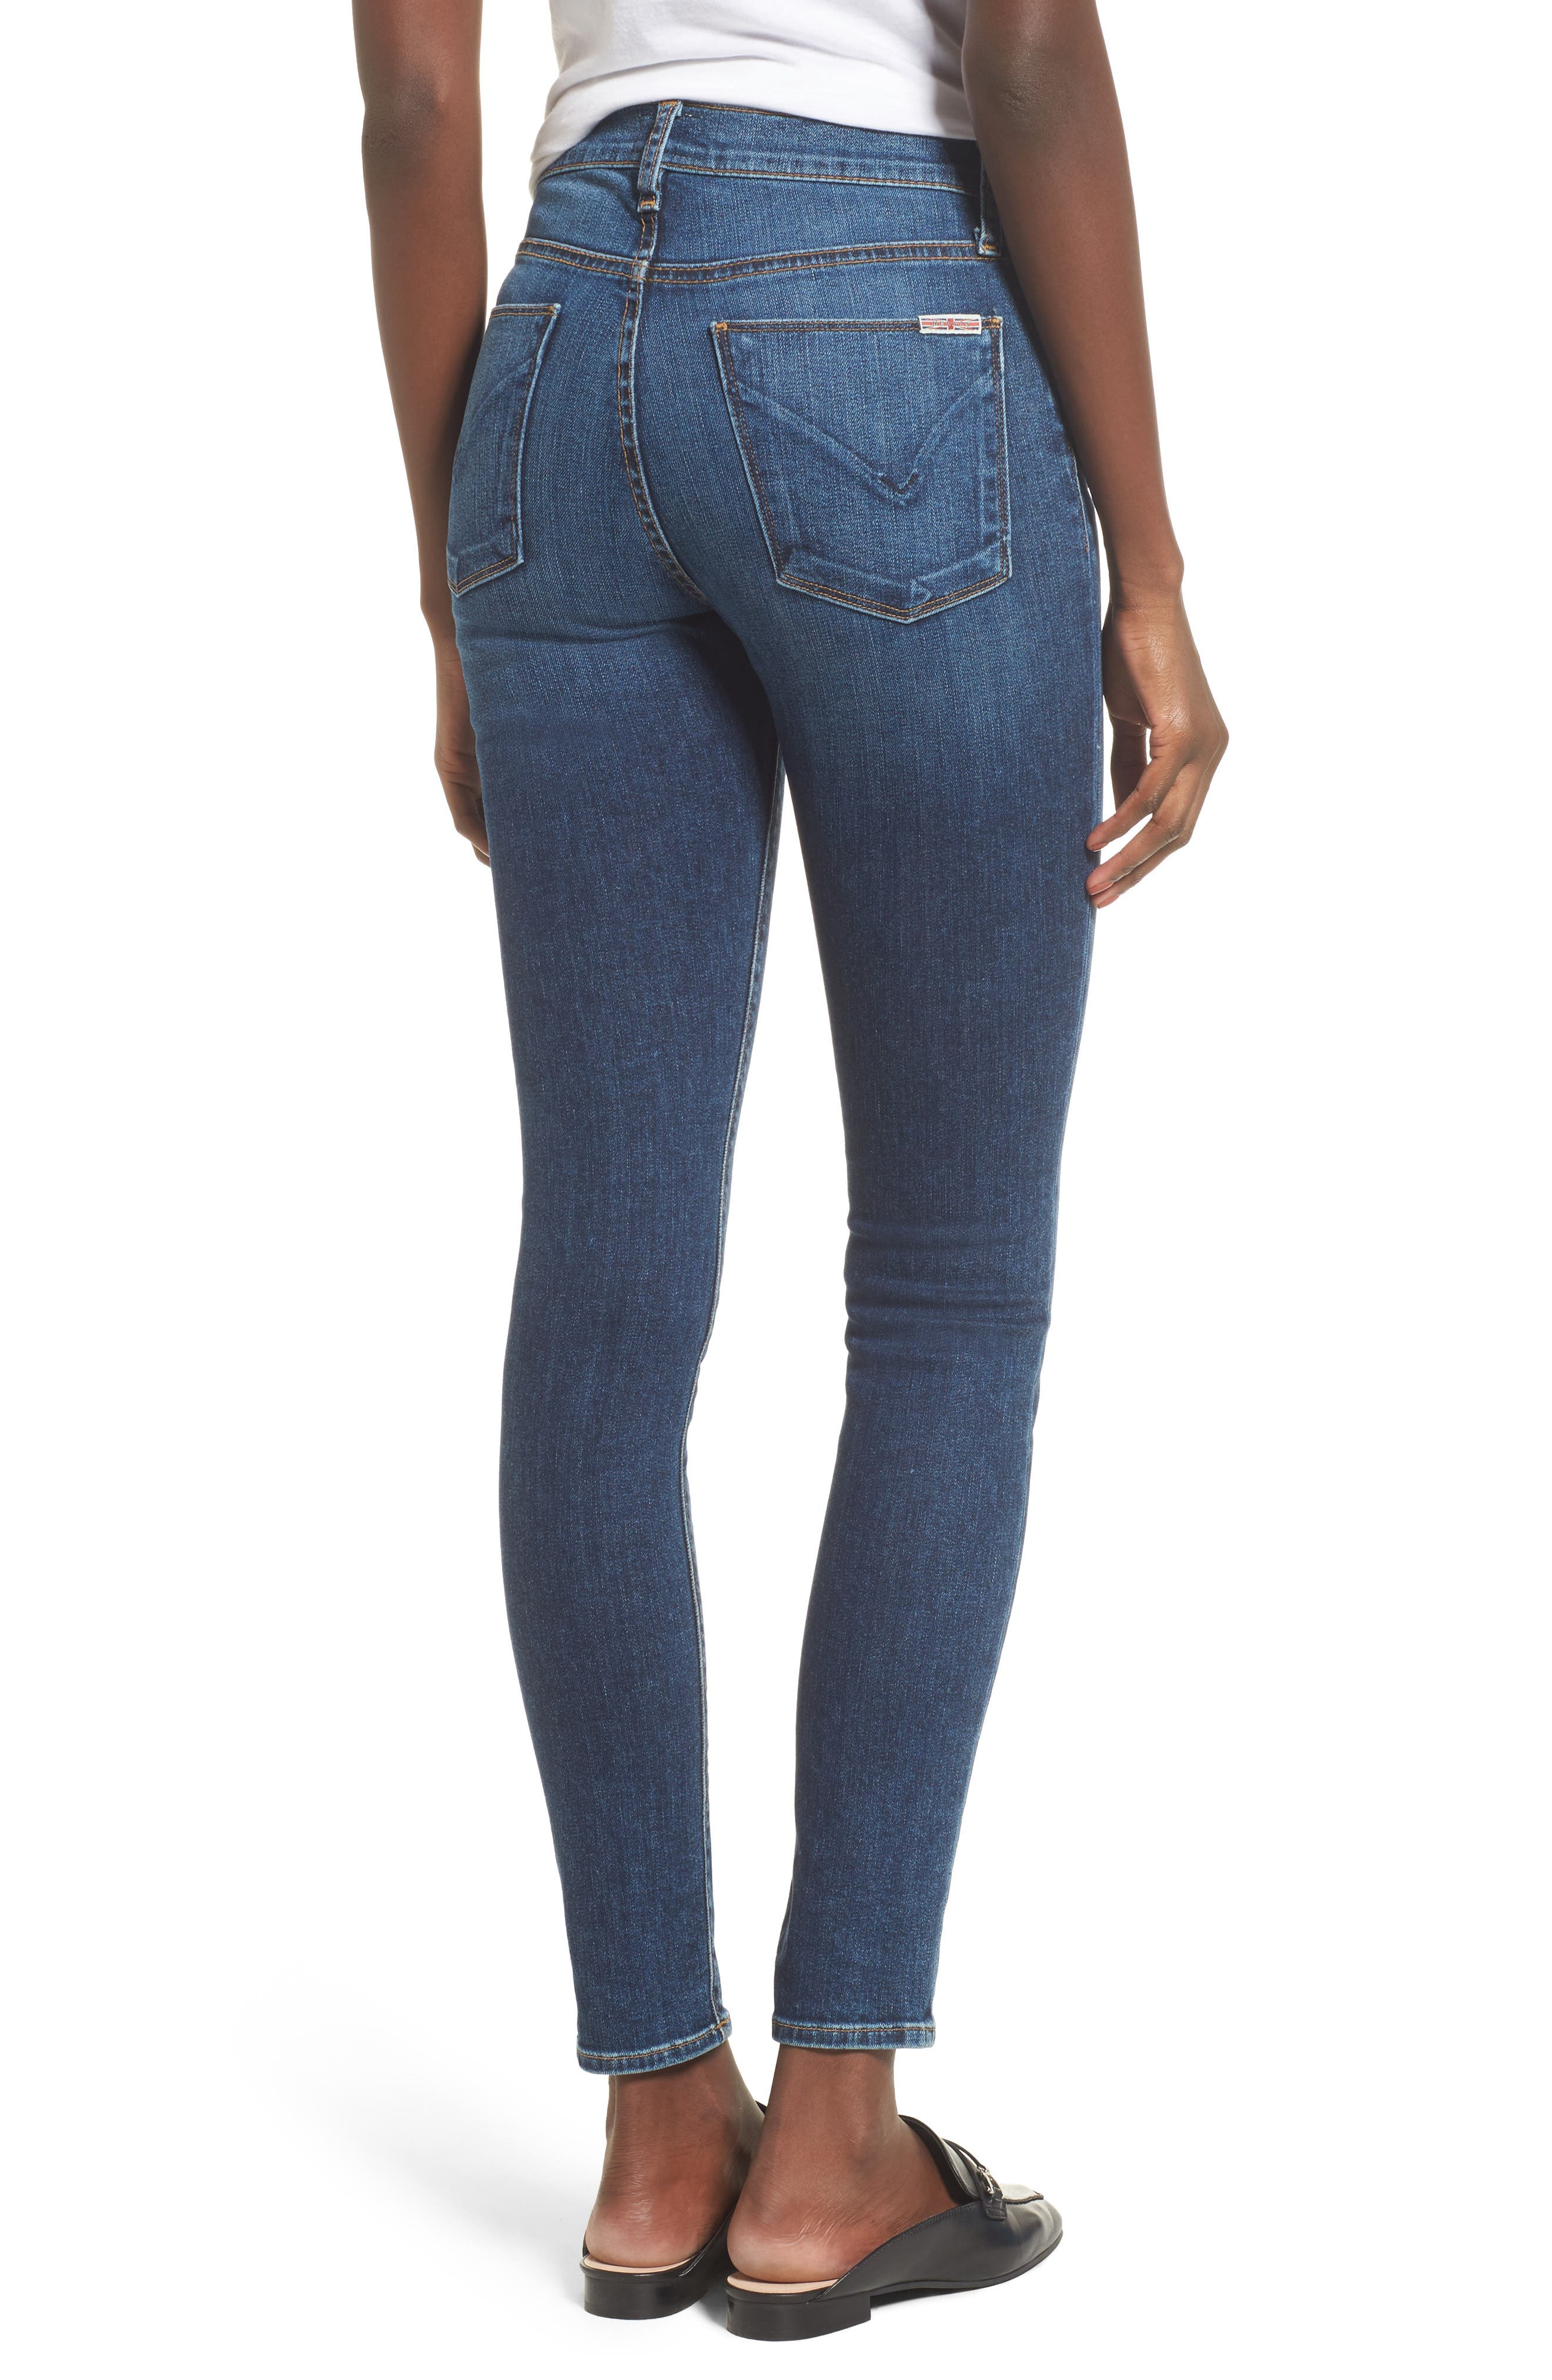 Barbara High Waist Super Skinny Jeans,                             Alternate thumbnail 2, color,                             Realism